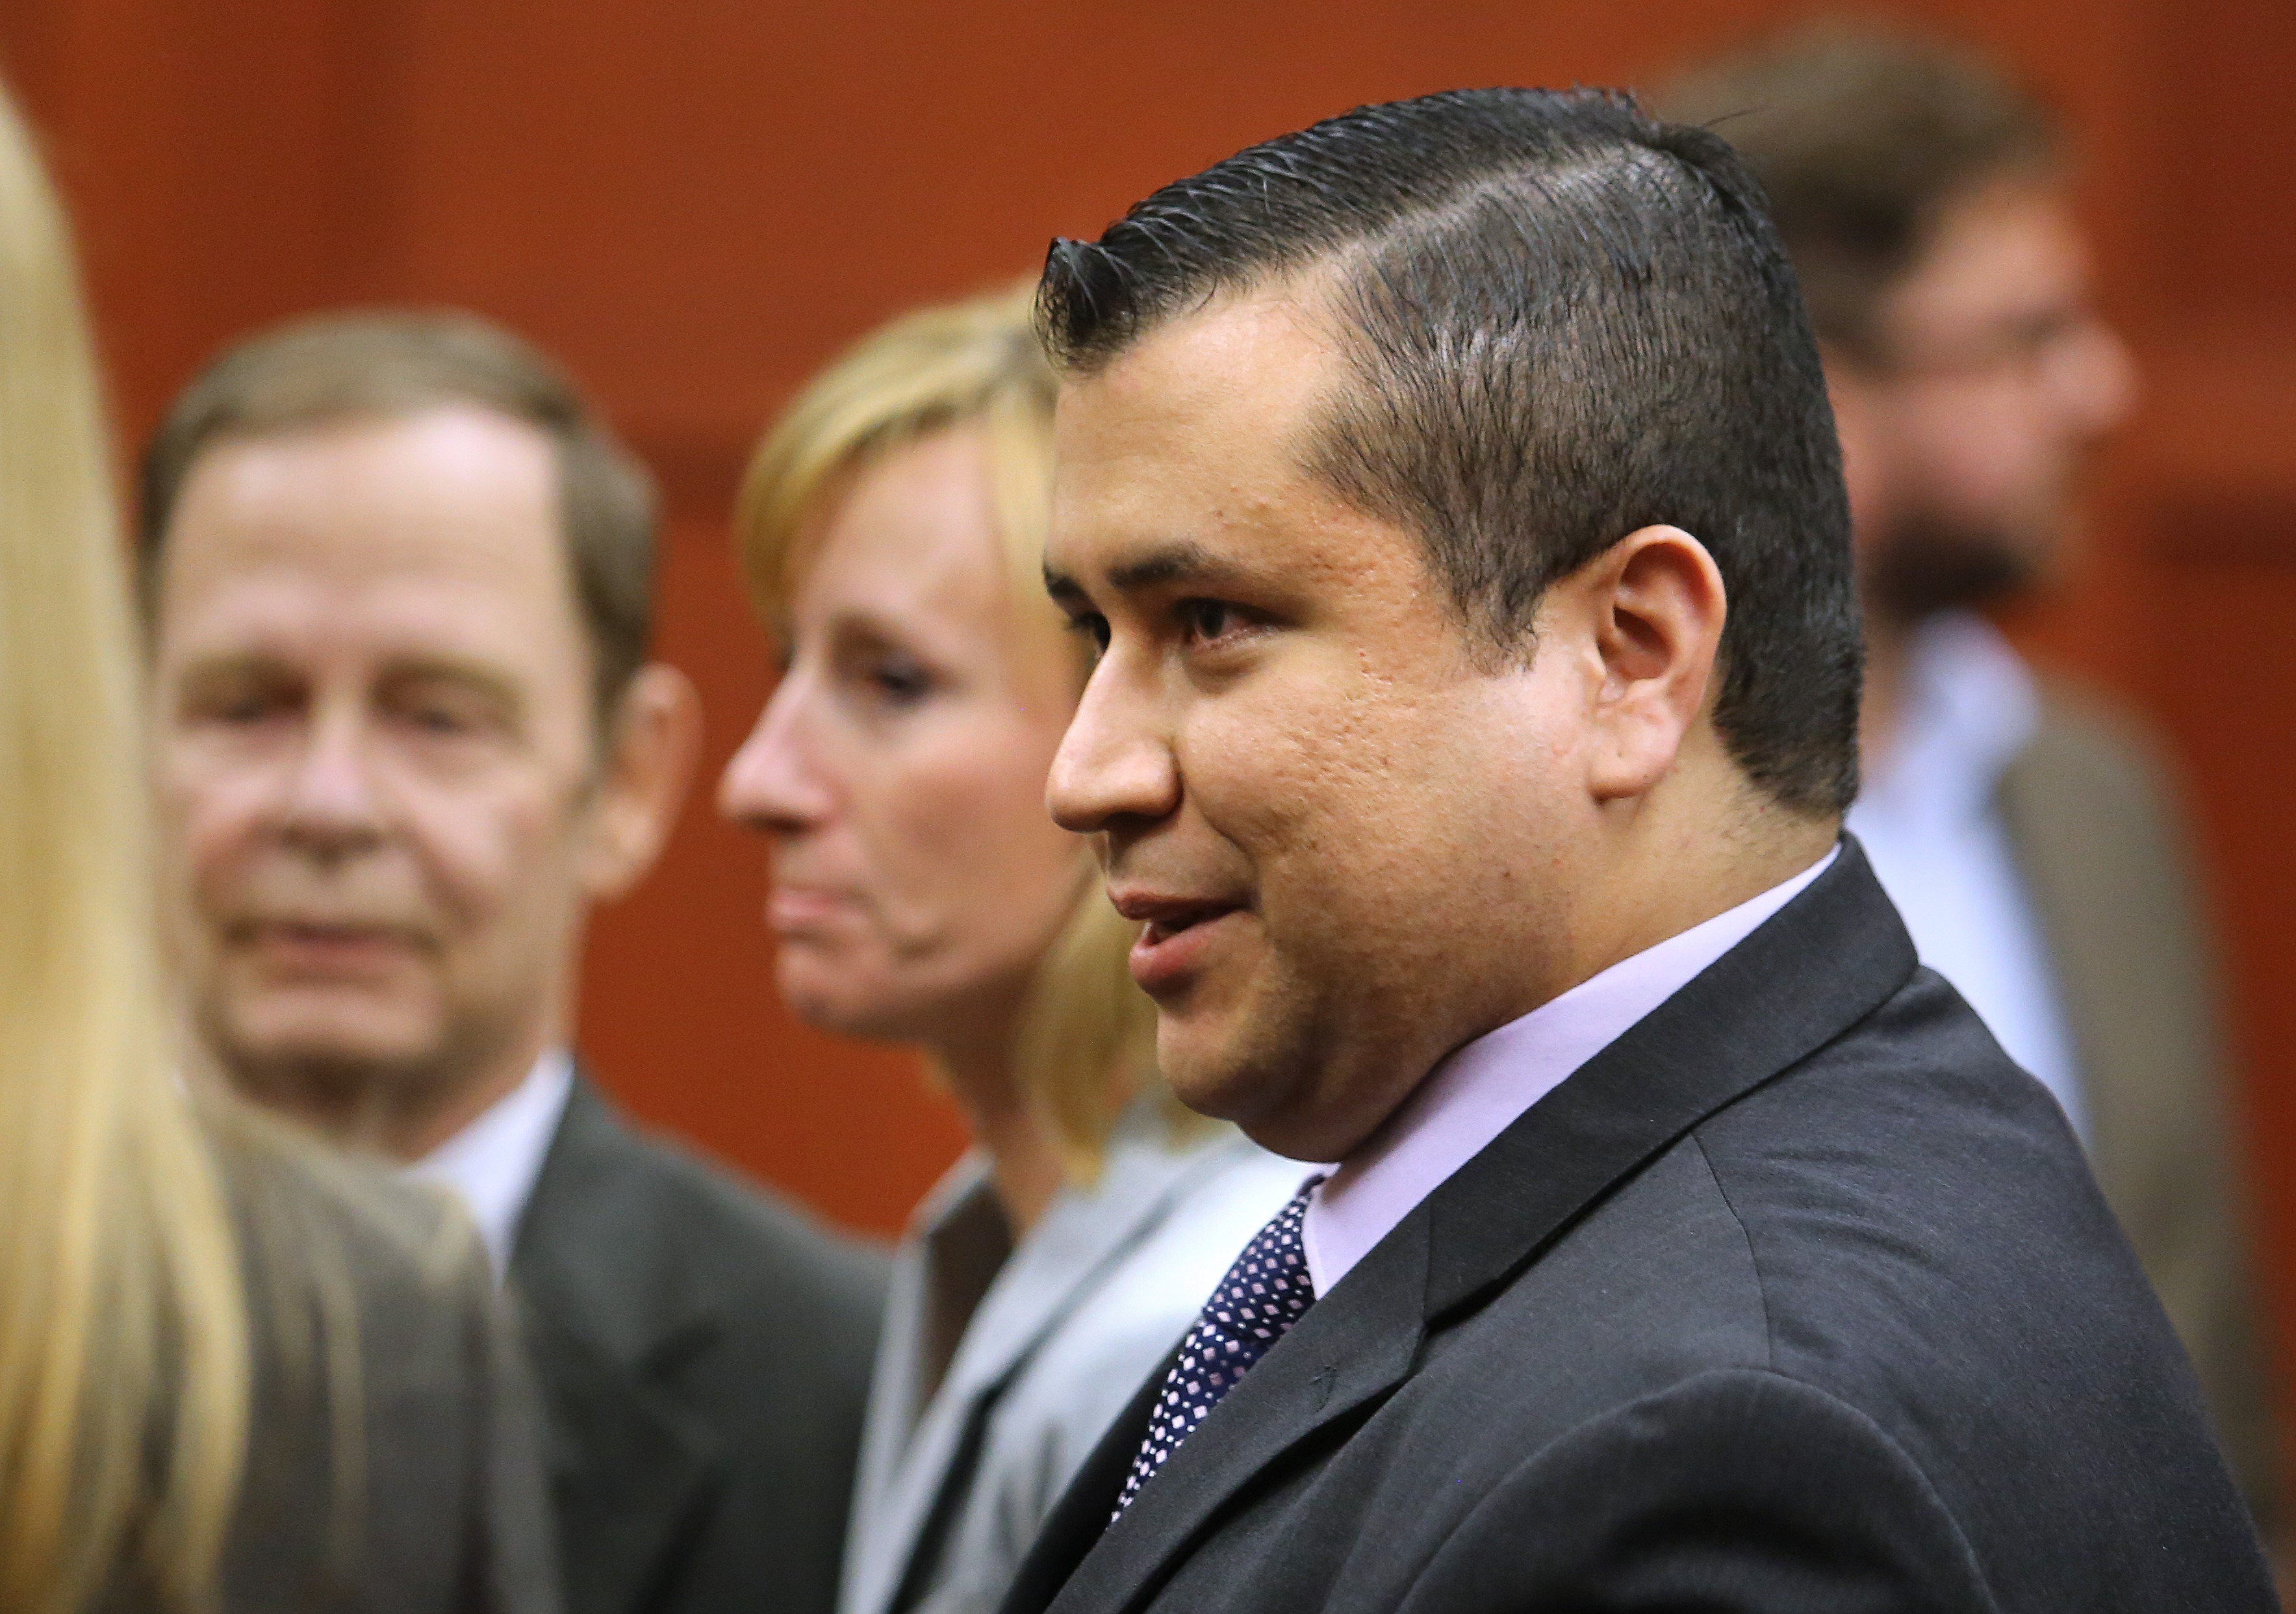 George Zimmerman in court after his acquittal. (Getty)